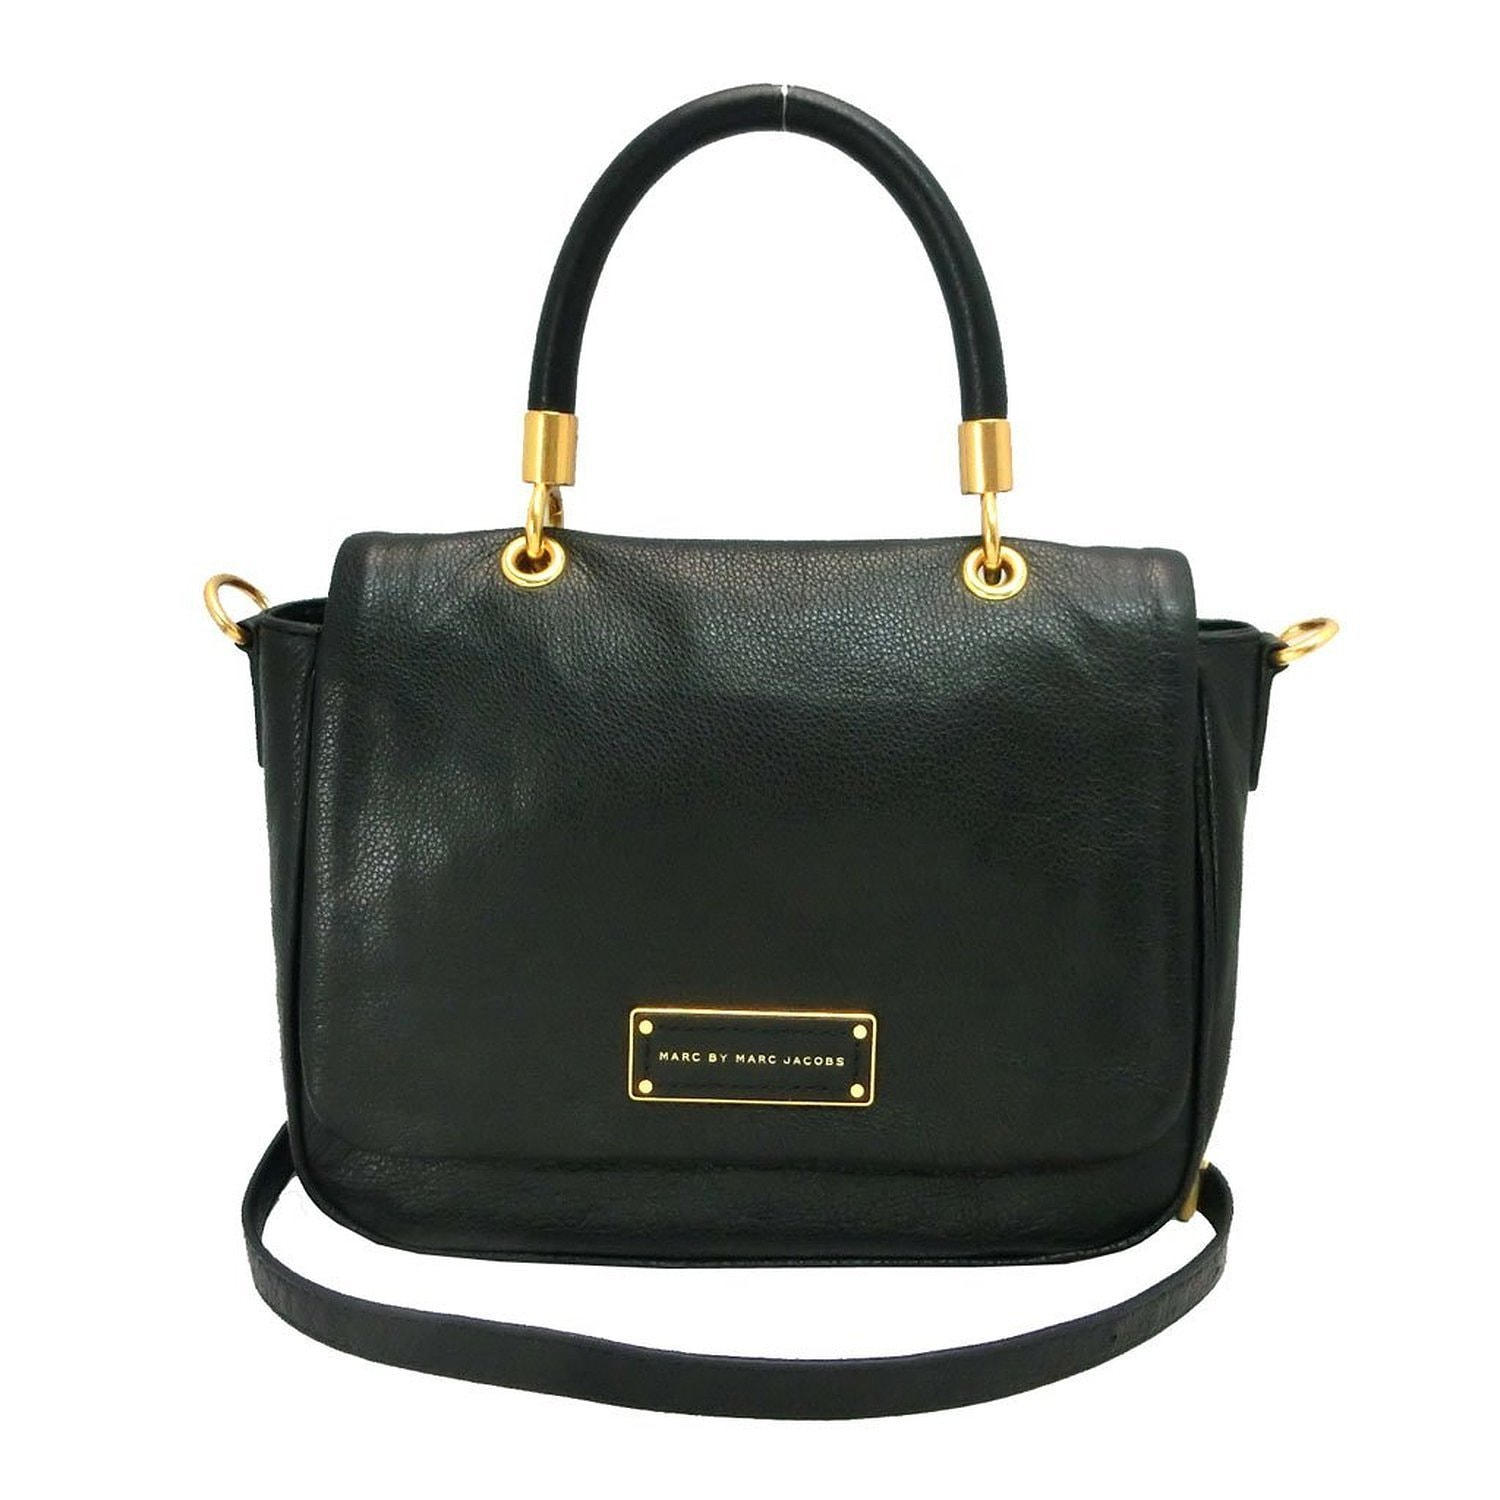 262b4239324 Shop MARC BY MARC JACOBS Small Too Hot To Handle Black Leather Tote ...